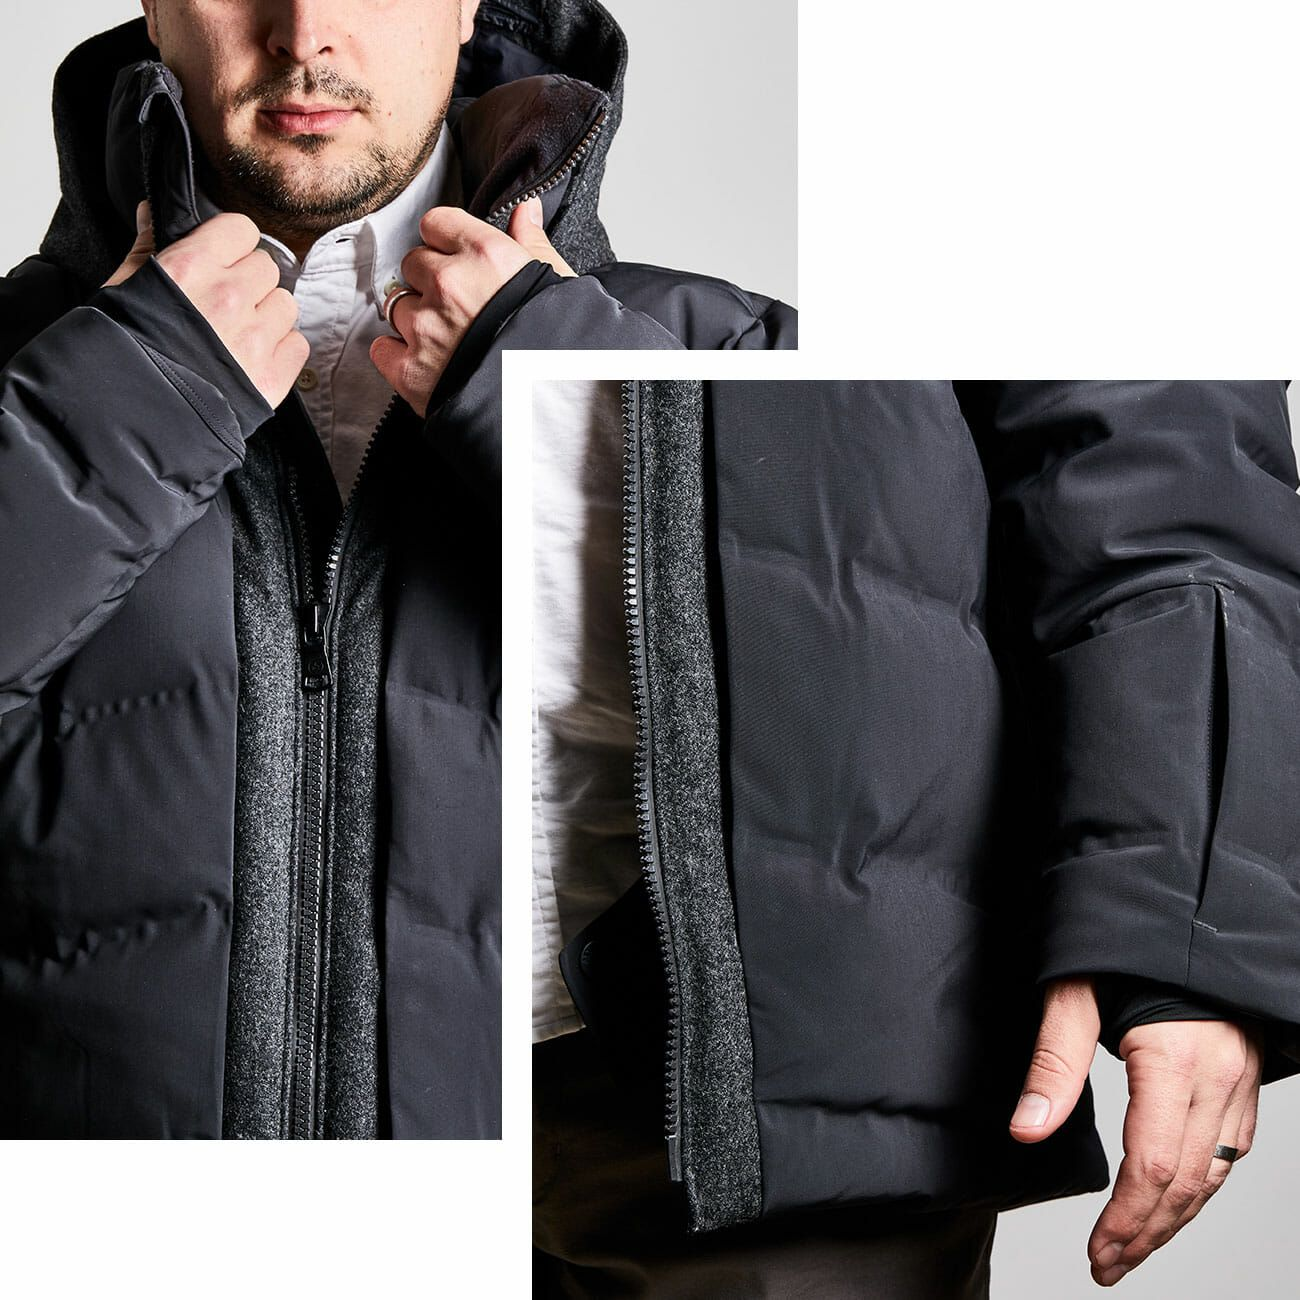 Sweatwater Mens Stand Collar Button Quilted Classic Fleece Thicken Jacket Anoraks Parka Coat